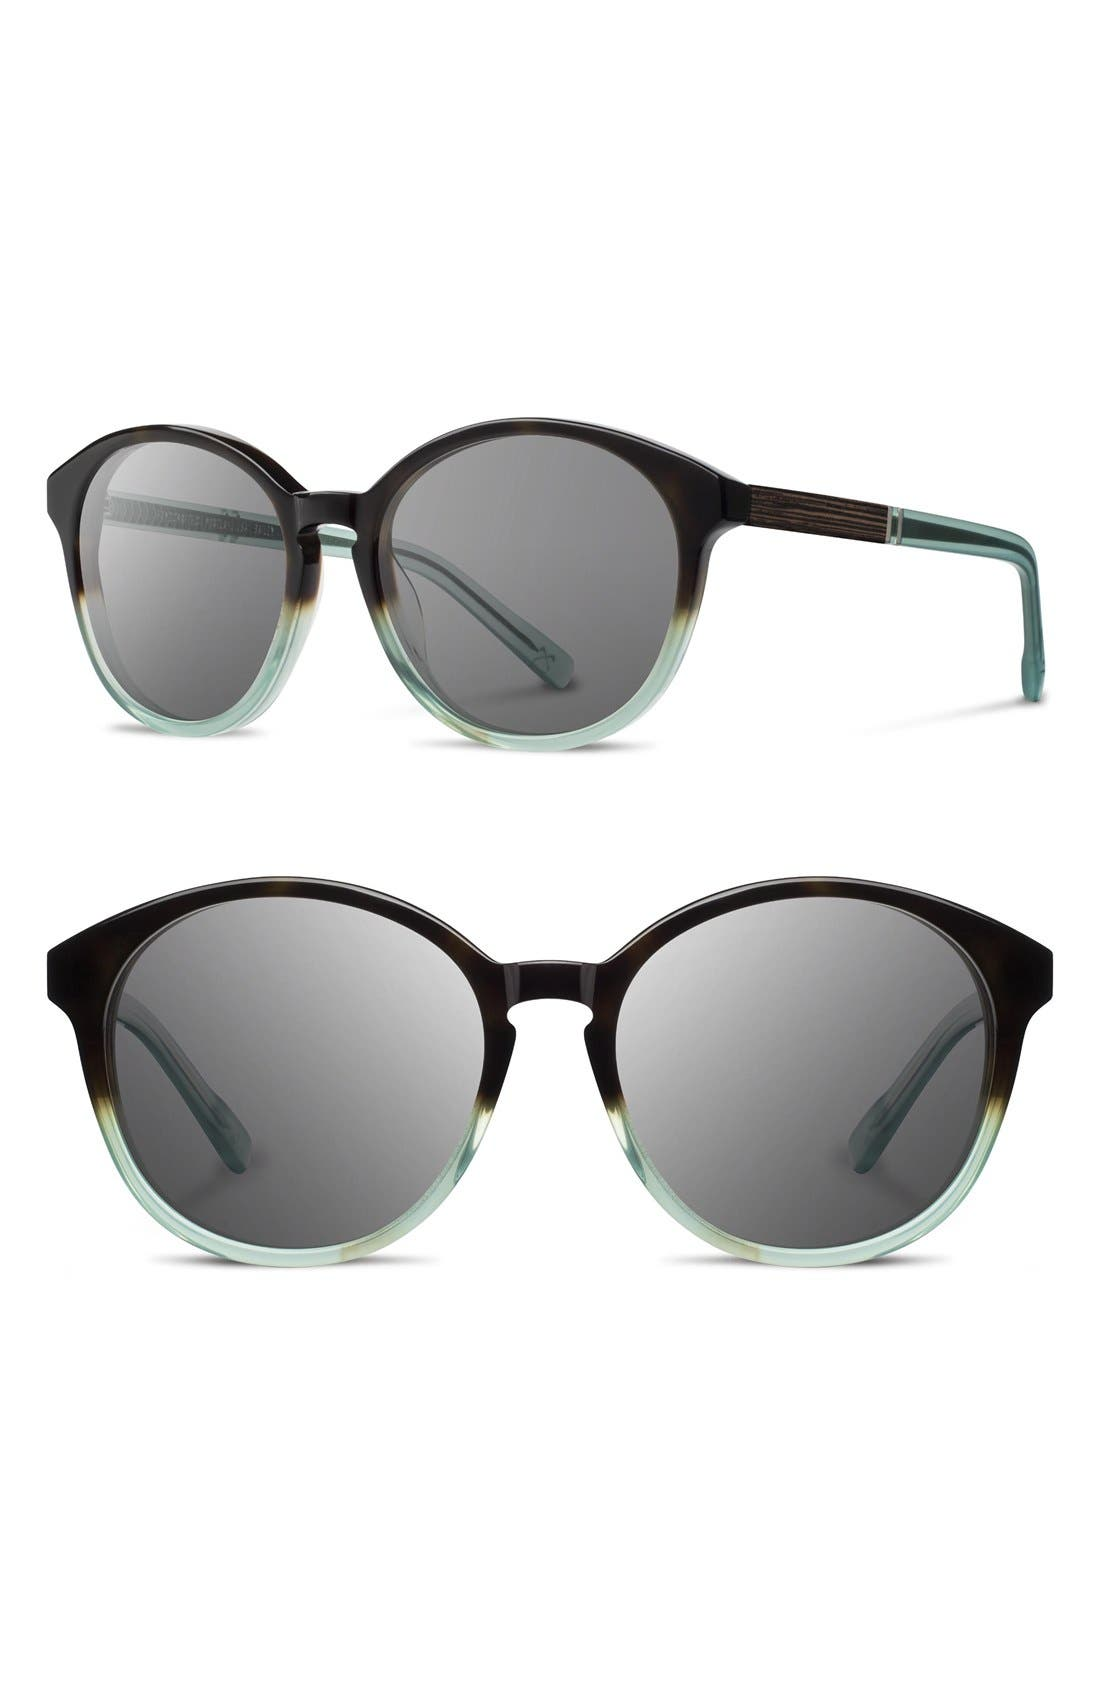 Main Image - Shwood 'Bailey' 53mm Round Sunglasses